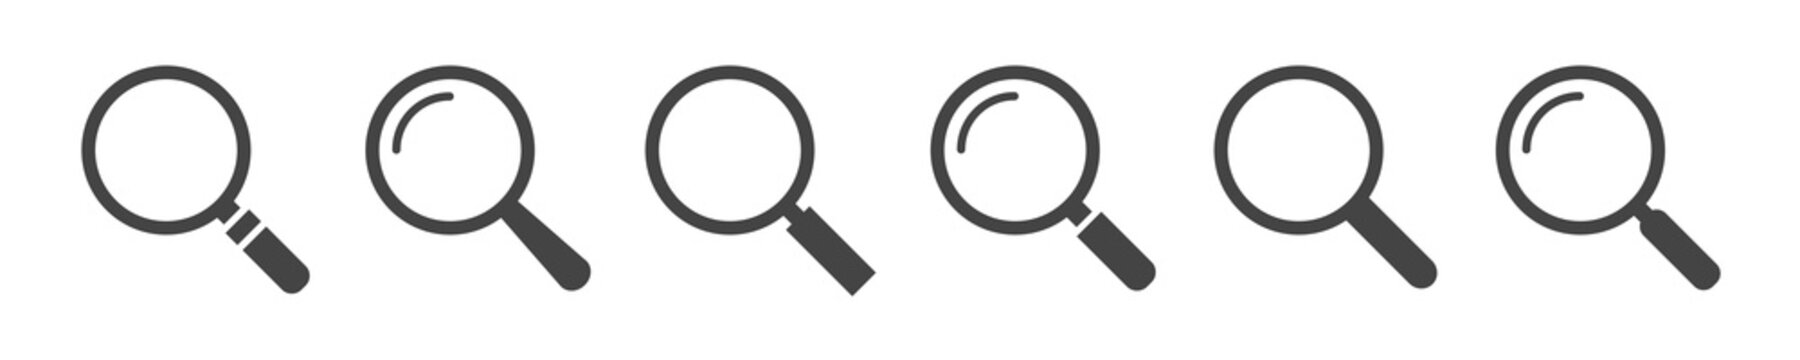 Search icons. Find icons. Magnifying glass icons. Magnifier or loupe sign set. Vector illustration.